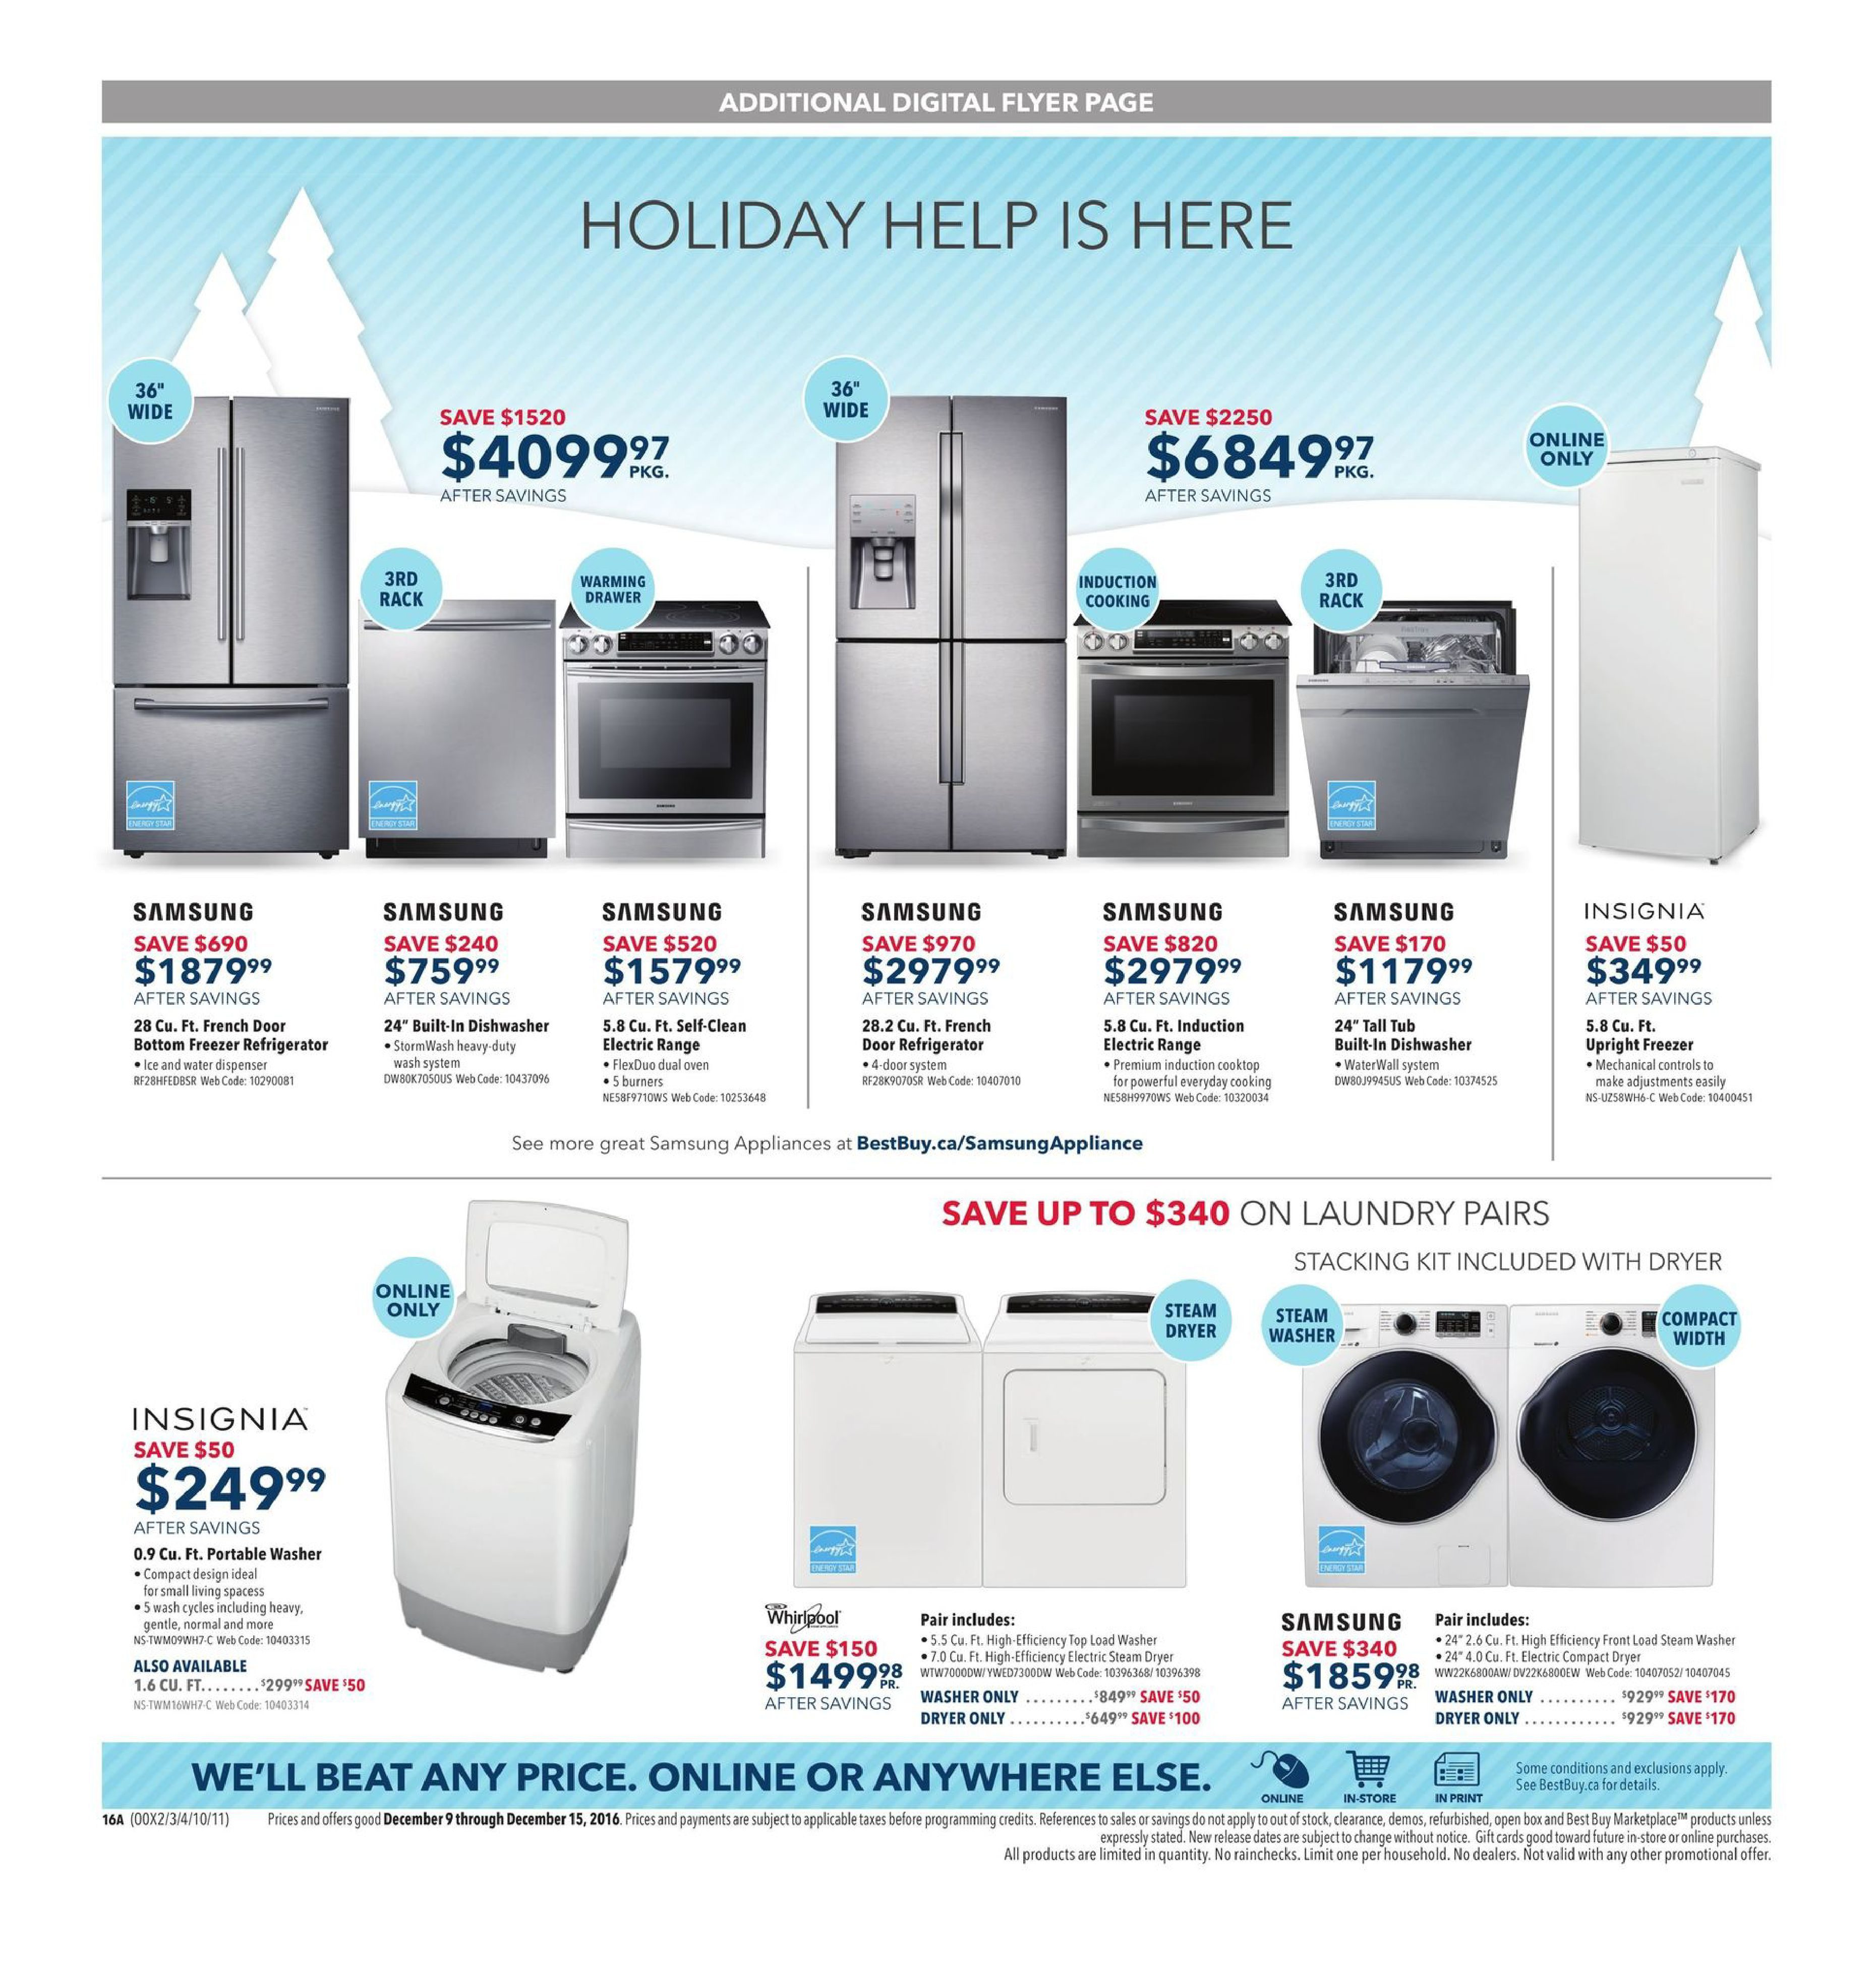 Best buy weekly flyer weekly perfect gifts dec 9 15 best buy weekly flyer weekly perfect gifts dec 9 15 redflagdeals fandeluxe Image collections